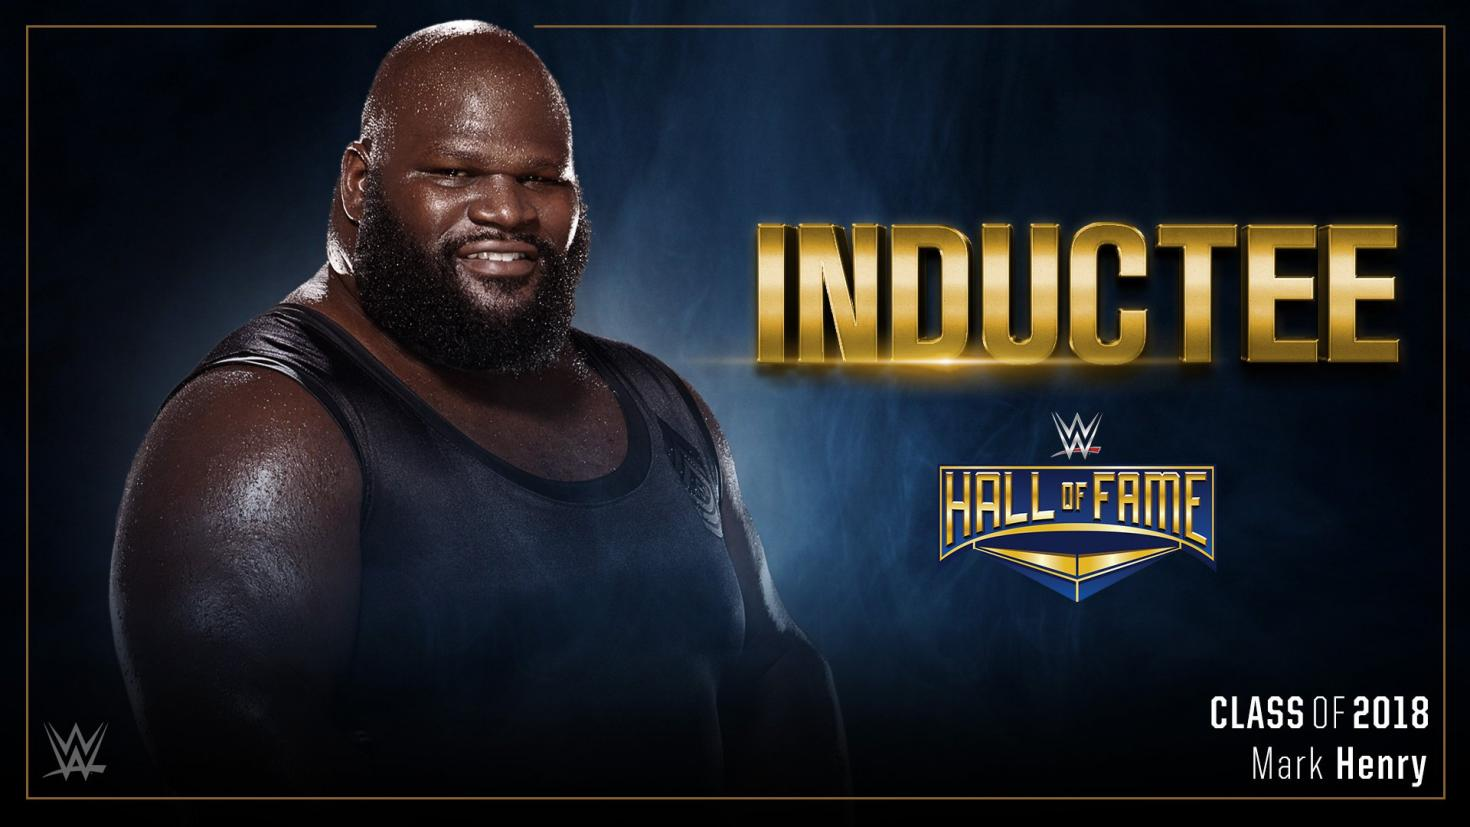 WWE: Several Superstars React to Mark Henry's Induction into the Hall of Fame. - Mark Henry